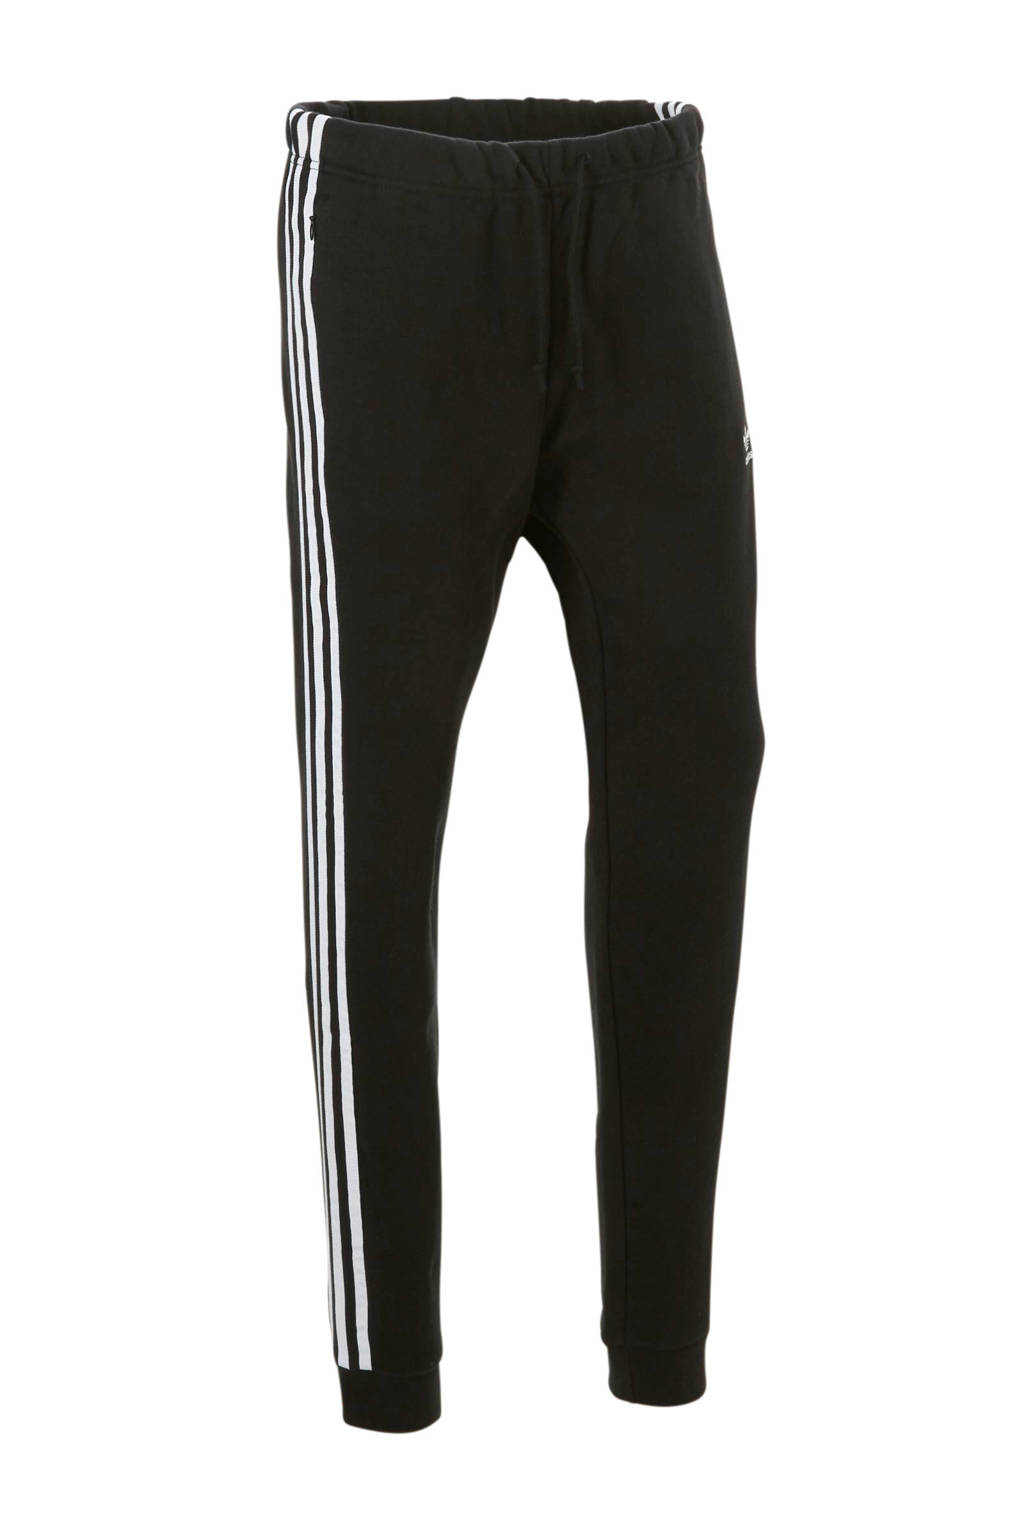 adidas originals joggingbroek zwart, Zwart/wit